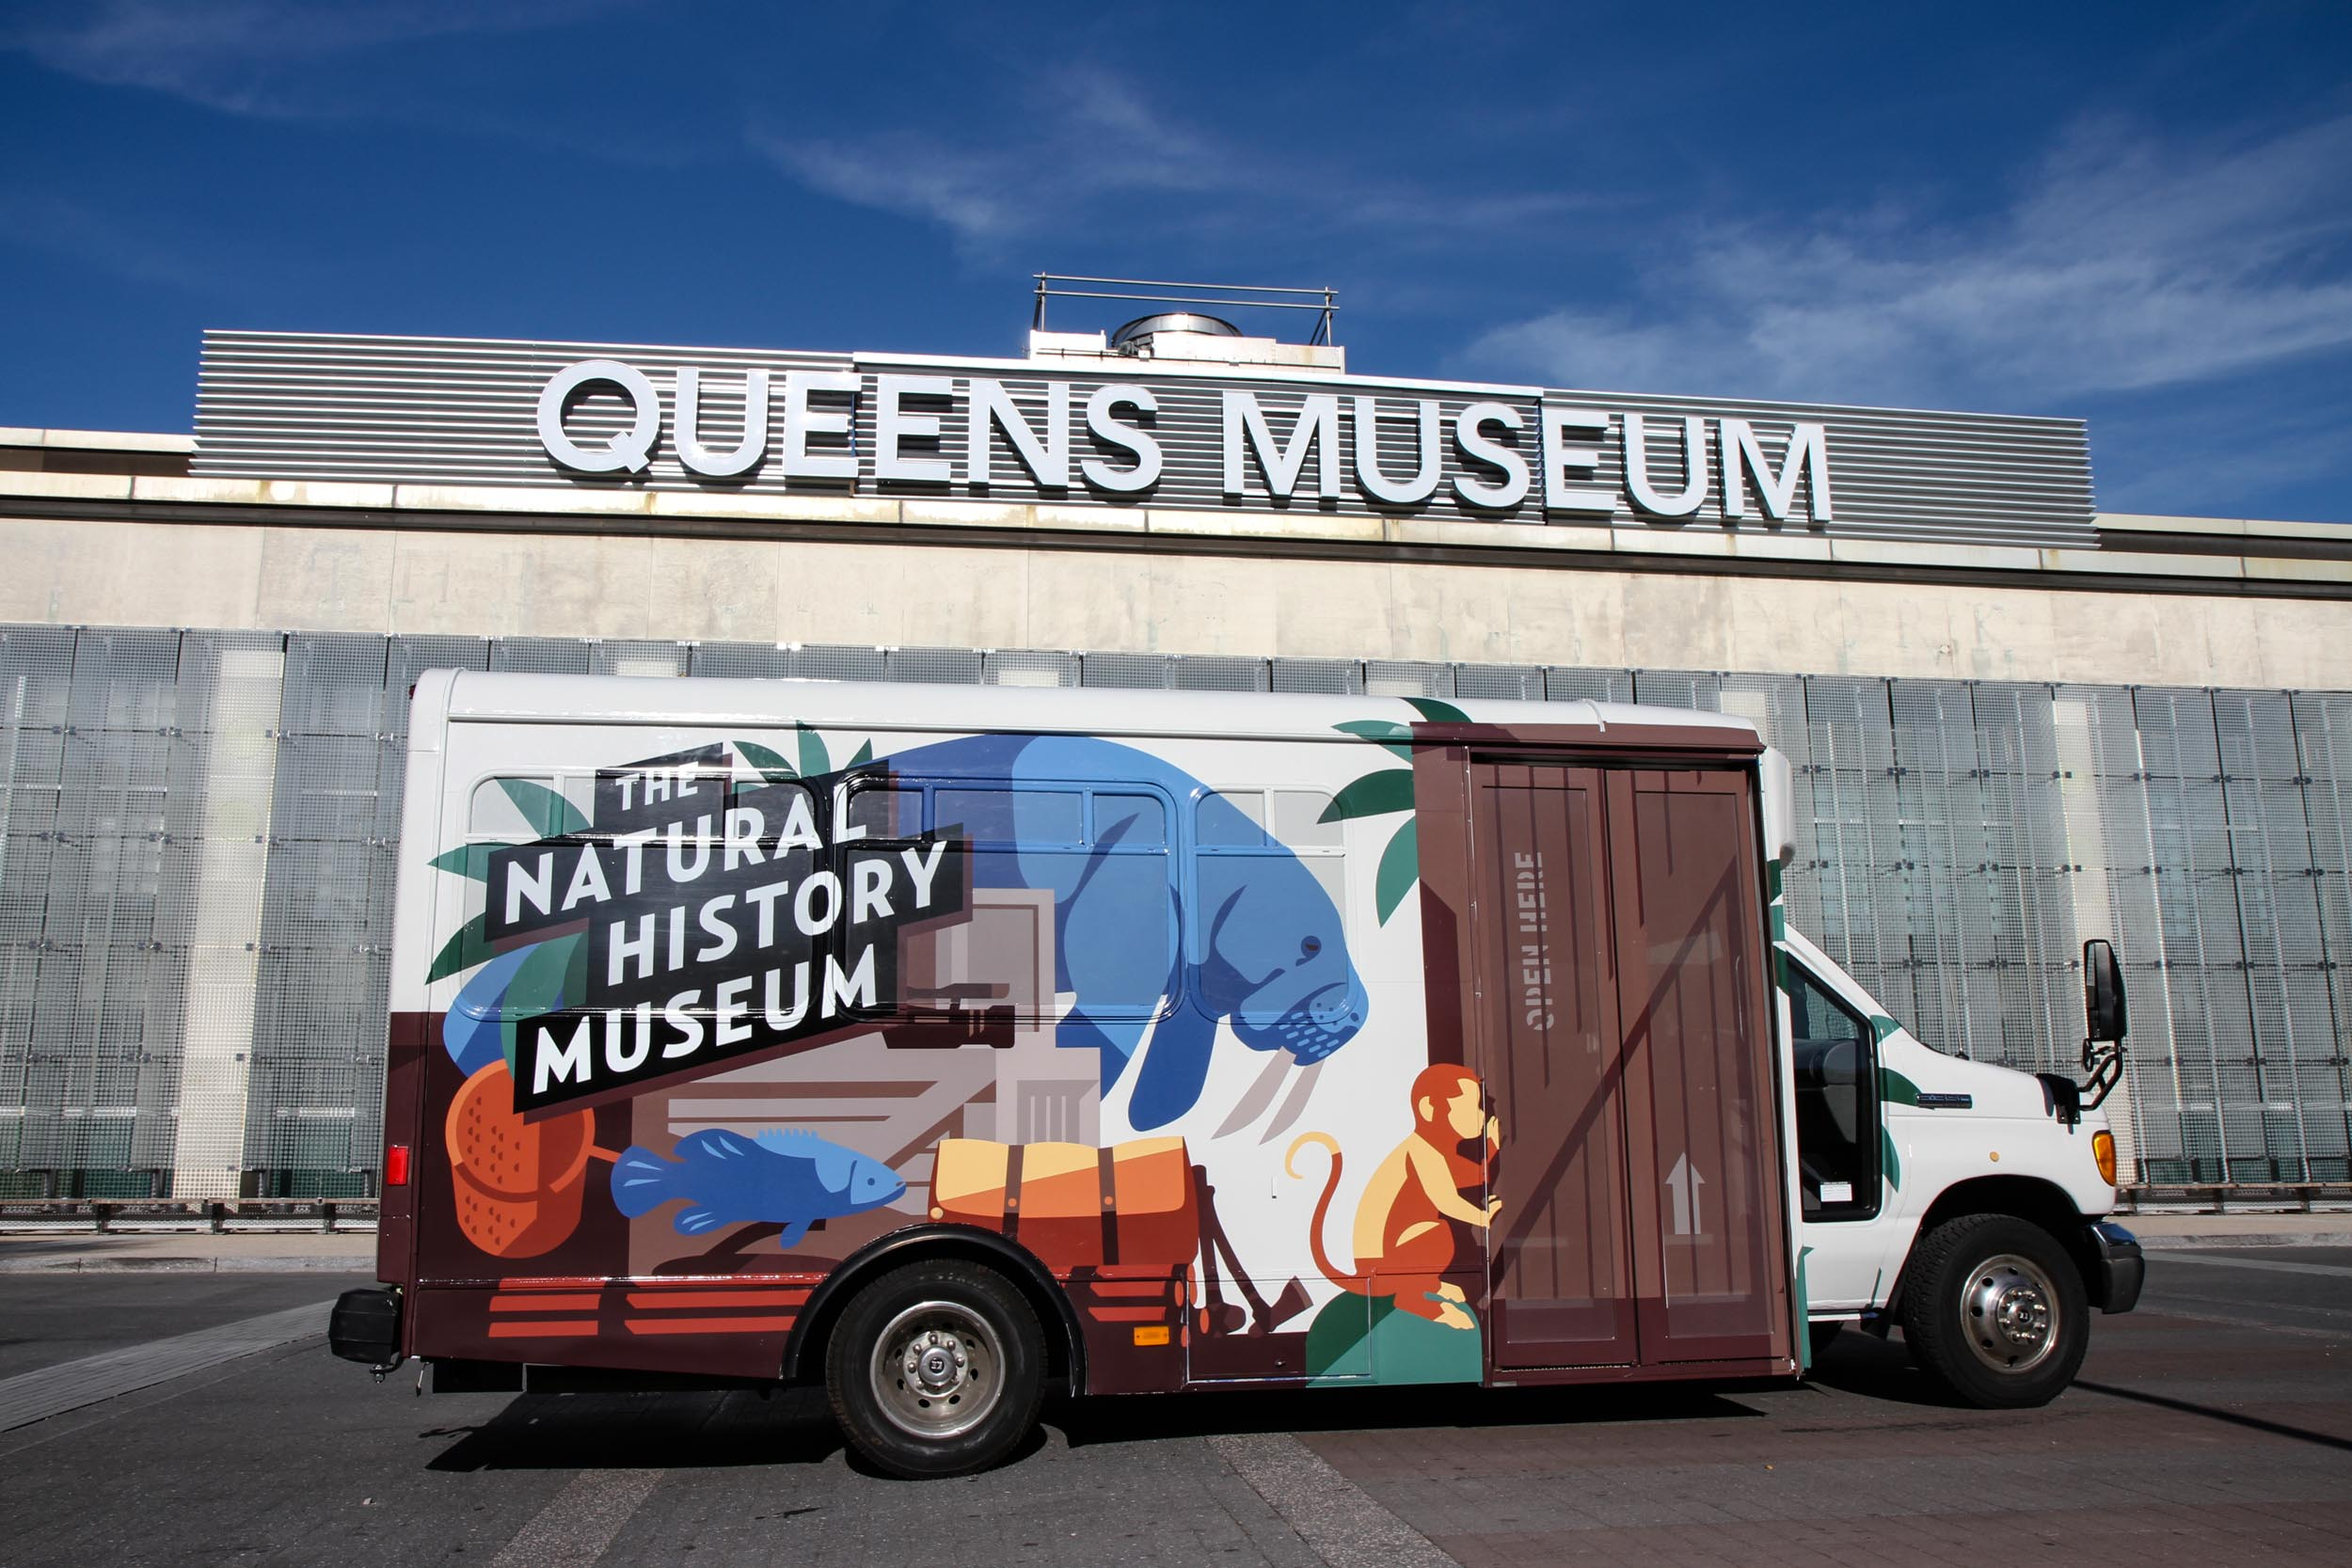 The Natural History Museum bus outside the Queens Museums for its inaugural exhibition in 2014.